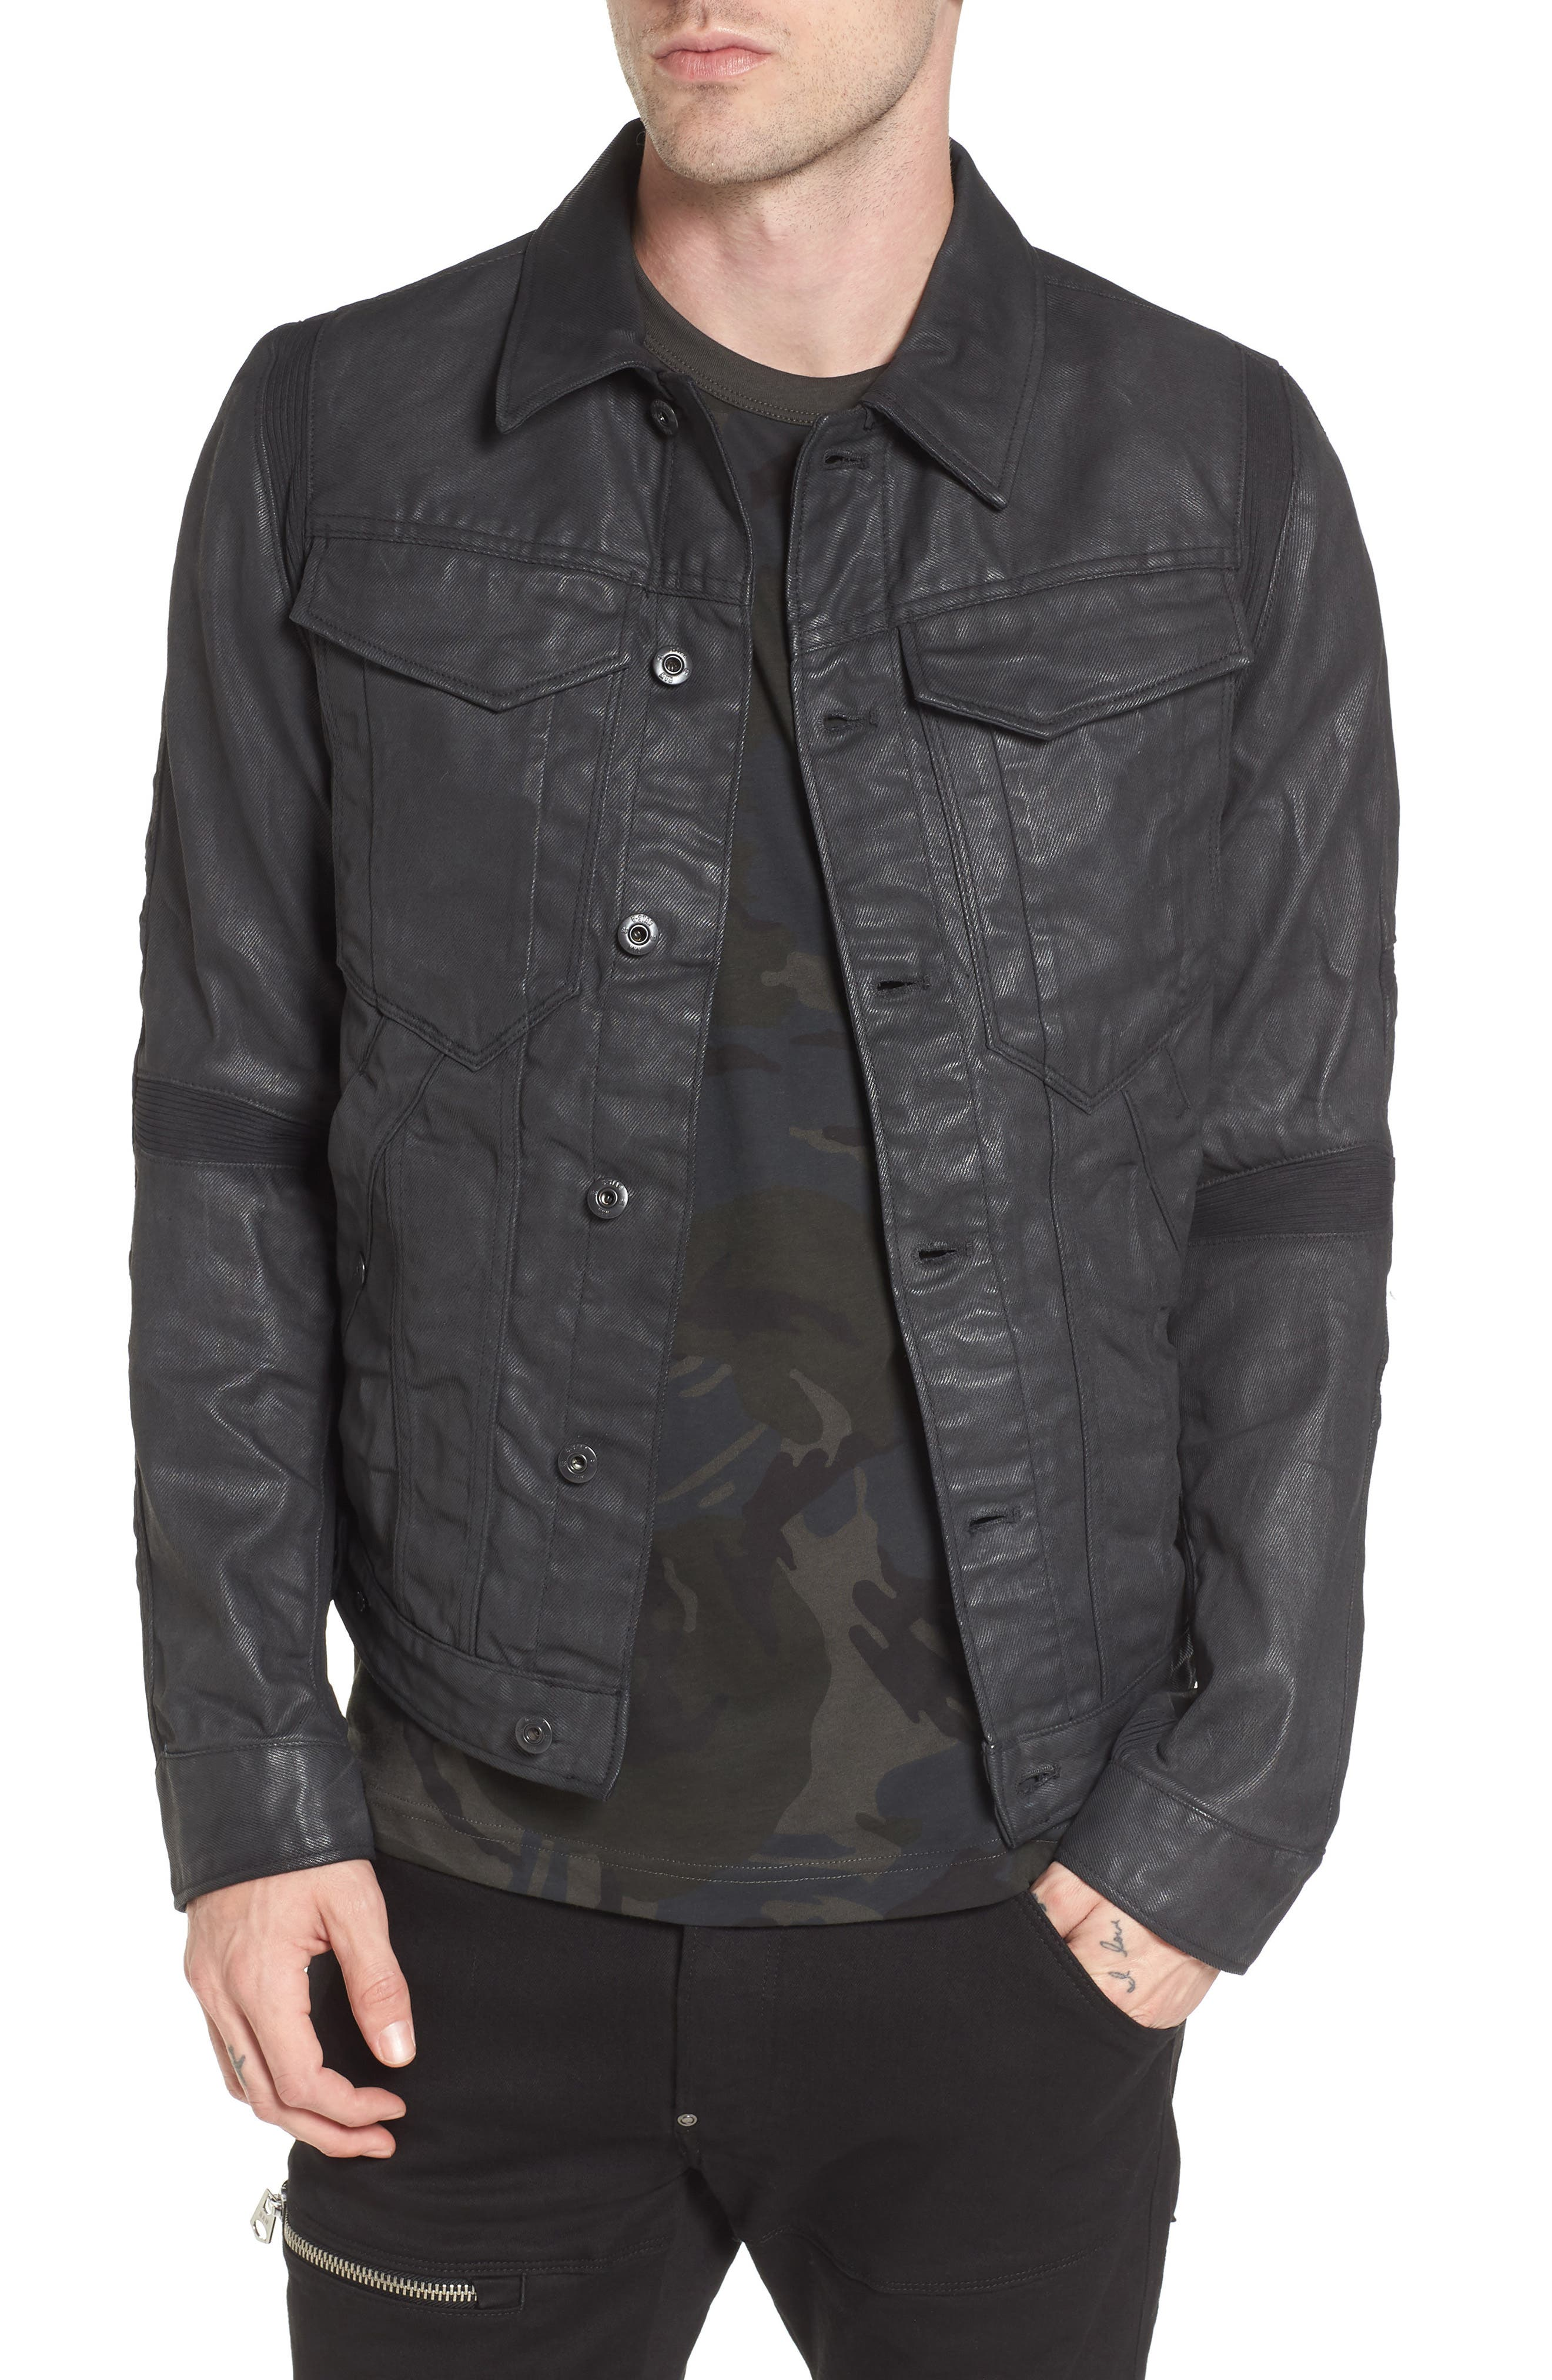 G-Star Raw Motac 3D Slim Denim Jacket